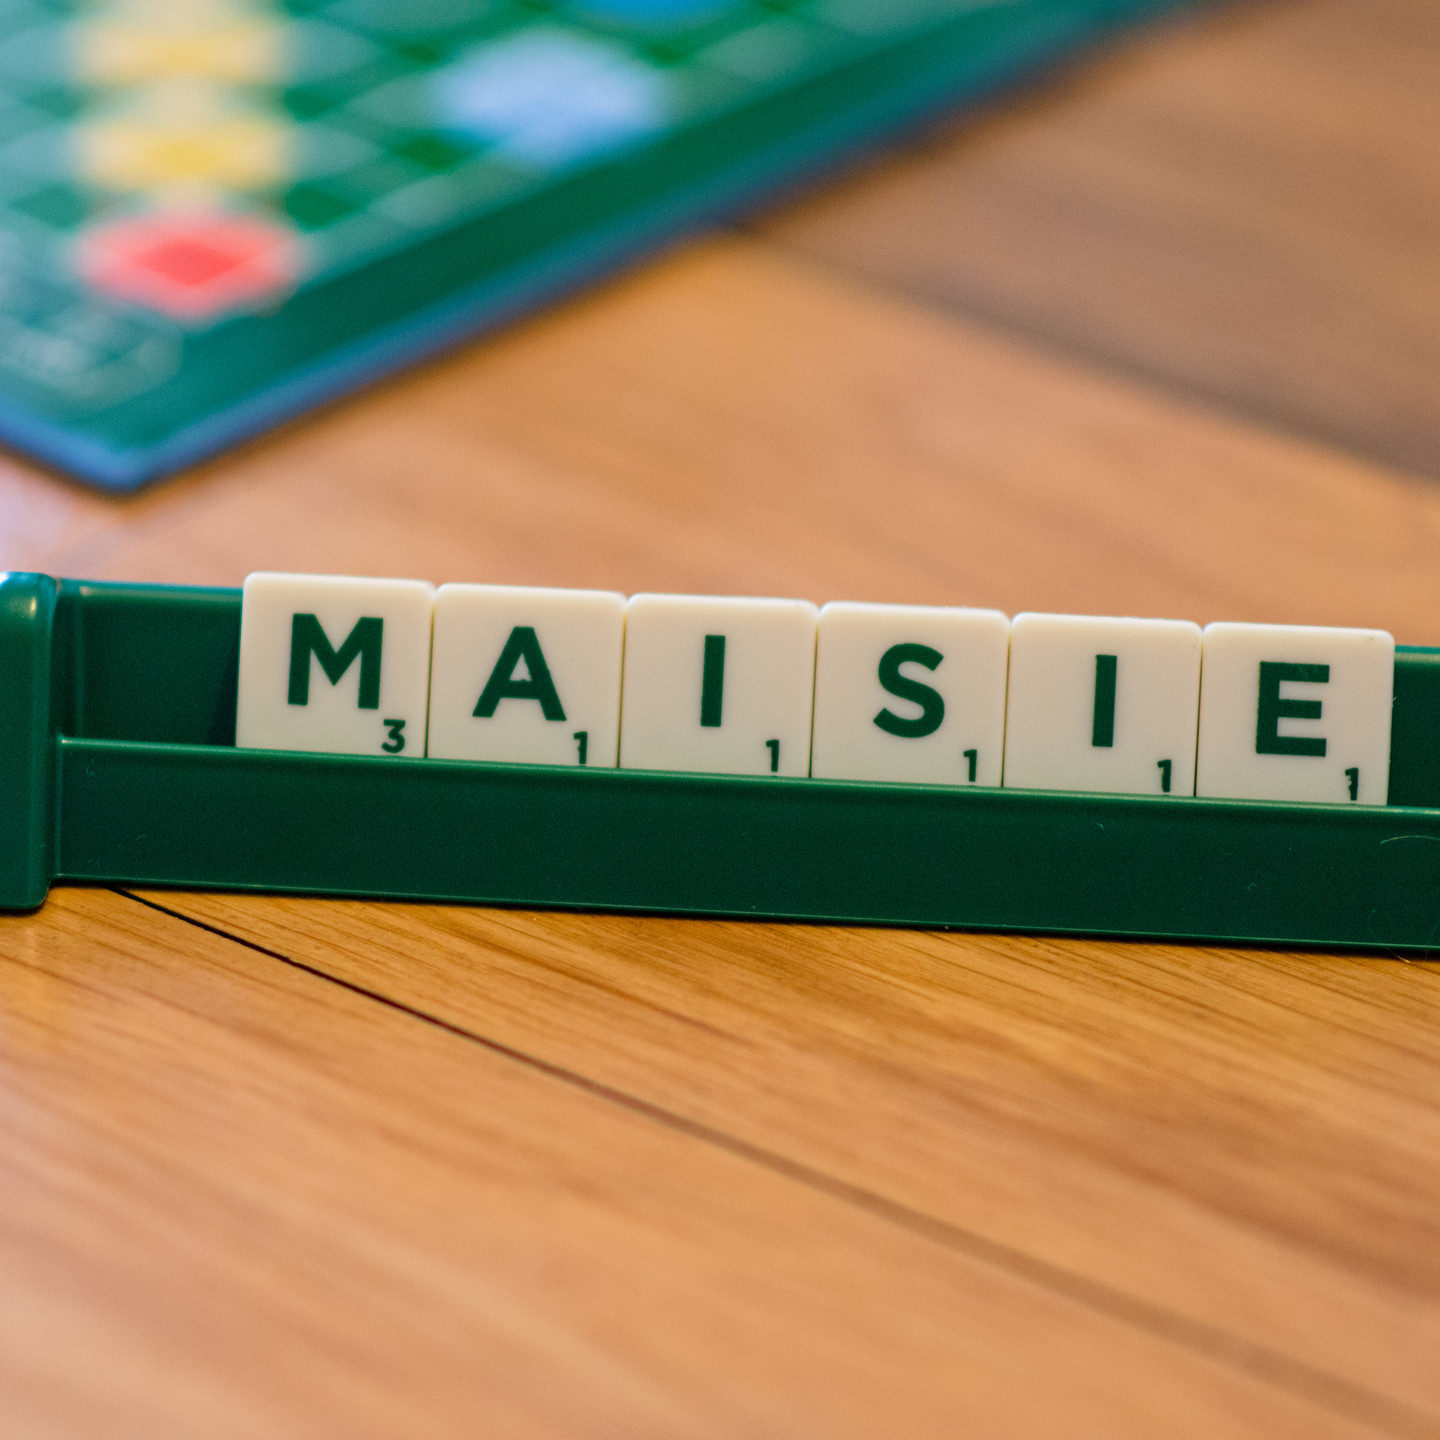 Pet Photographer Solihull, scrabble with a cats name, close up imgae